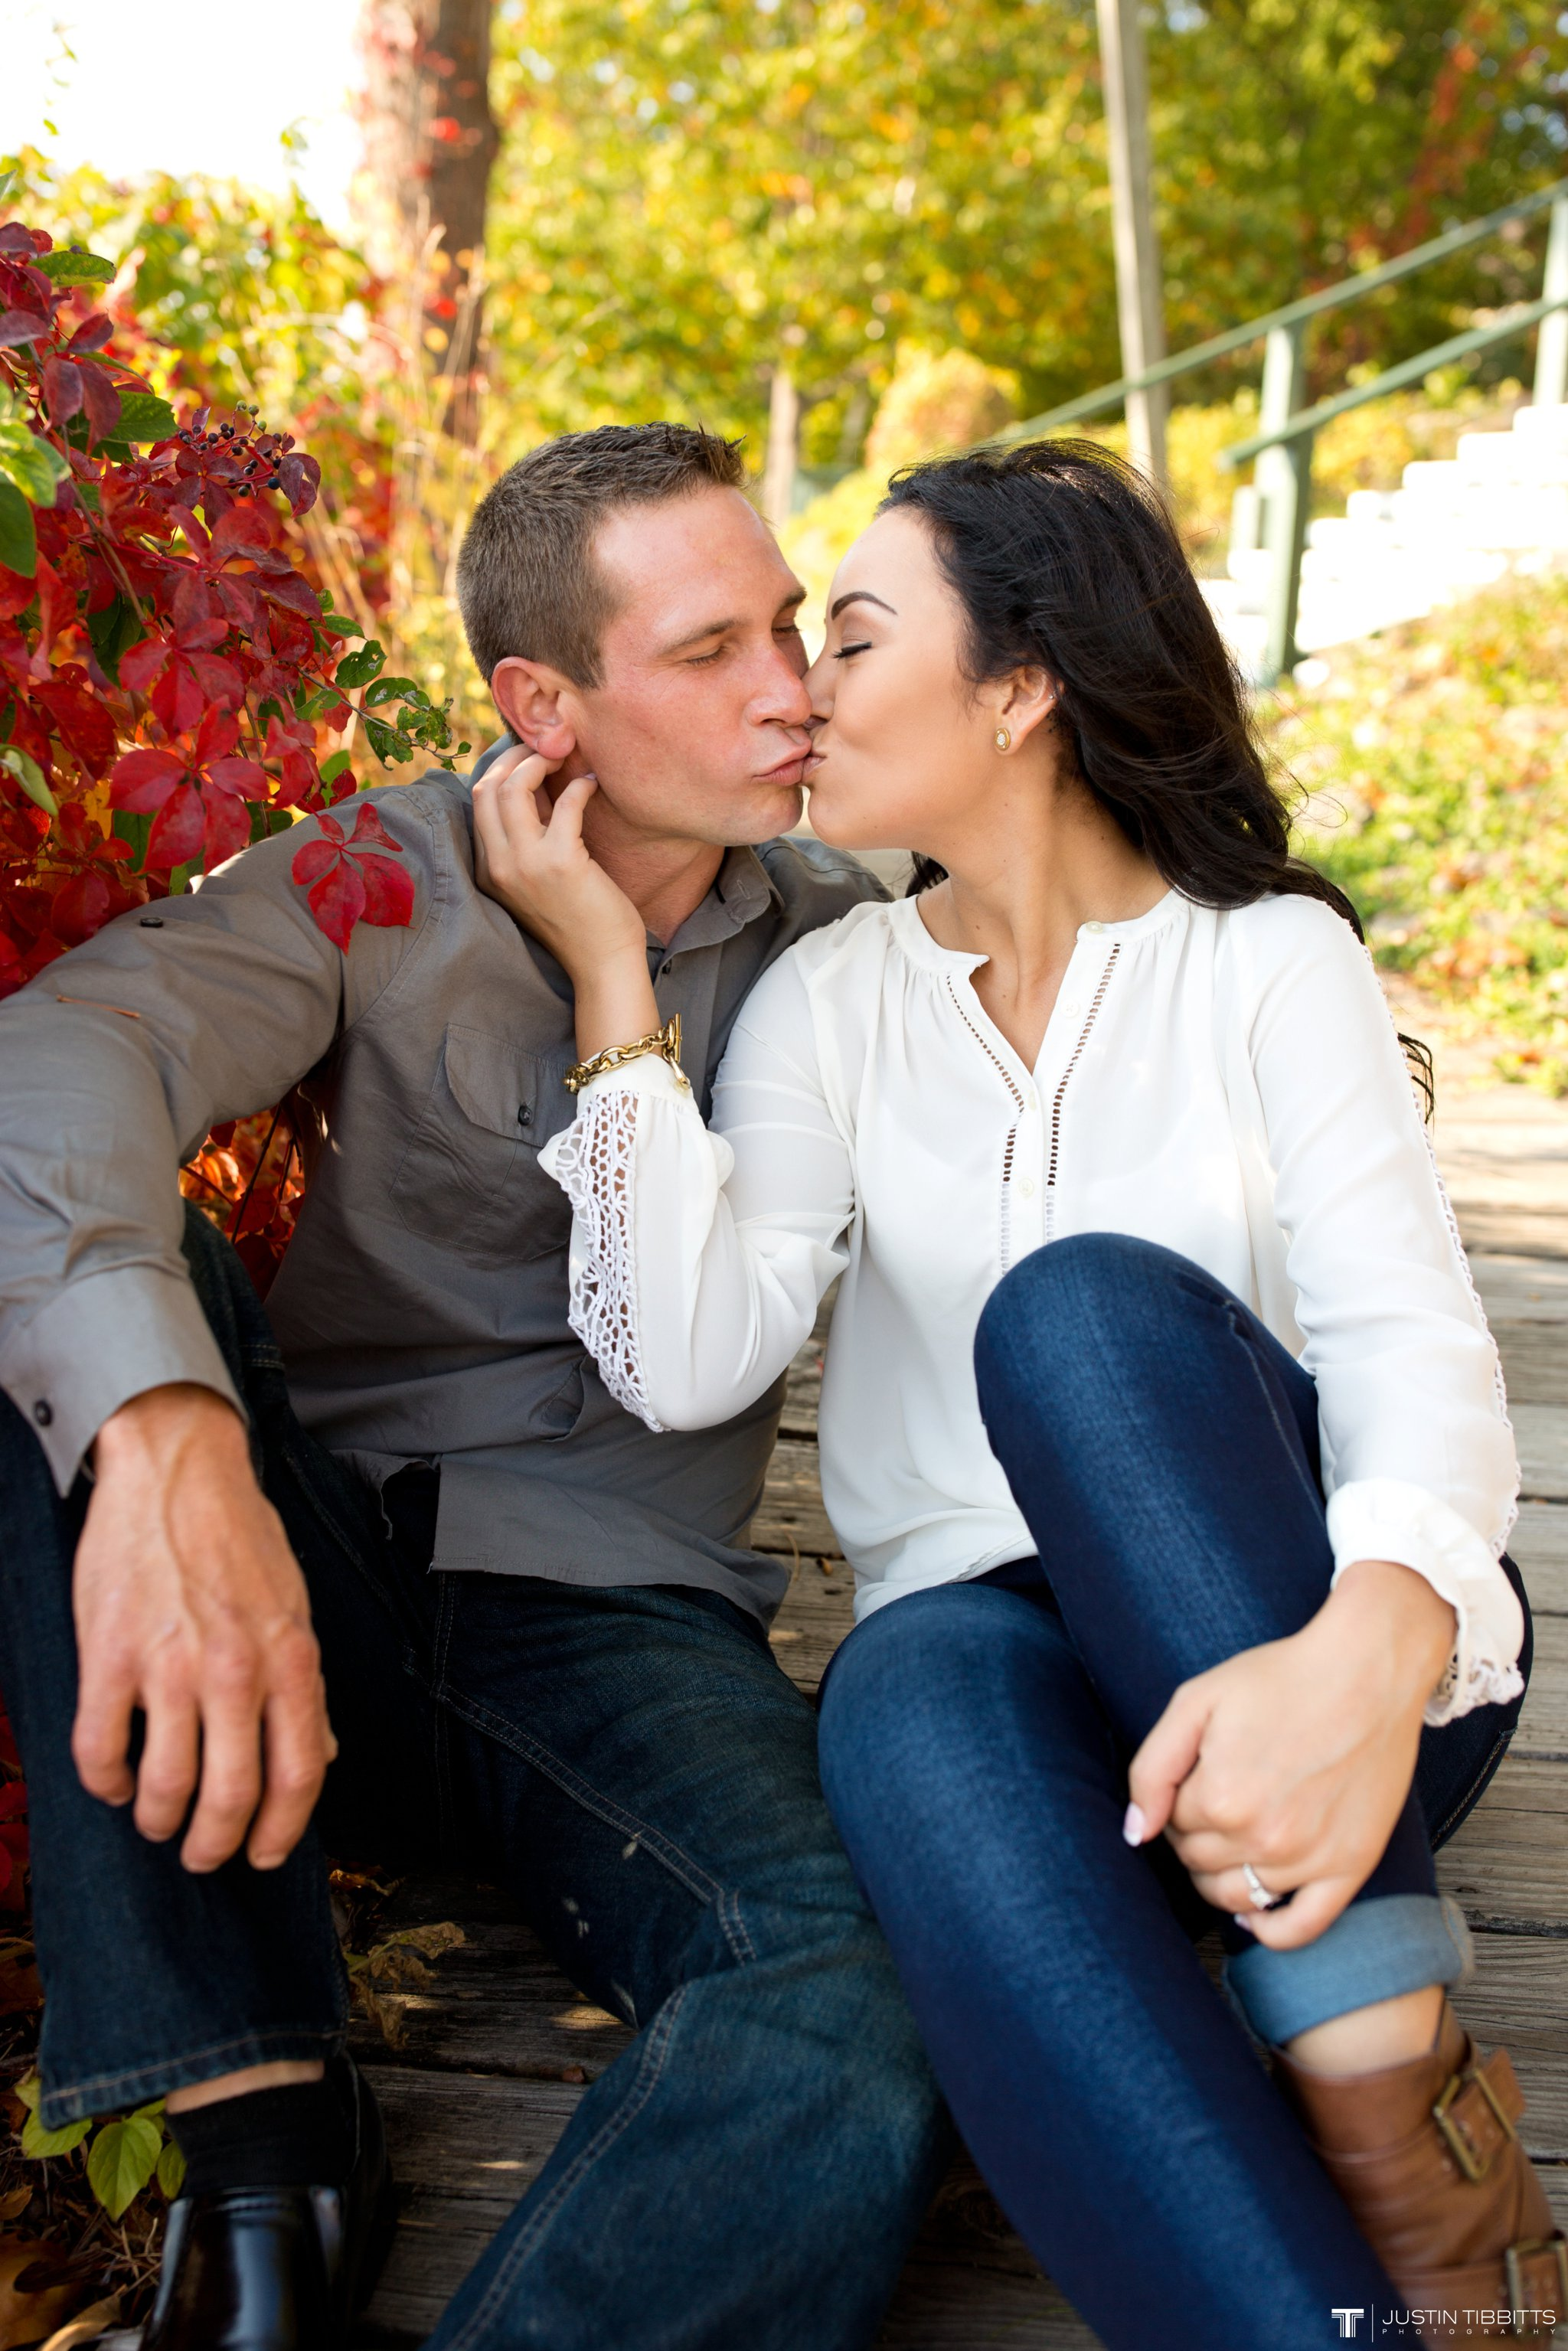 sagamore-engagement-photos-by-justin-tibbitts-photography-with-laina-and-mike_0009